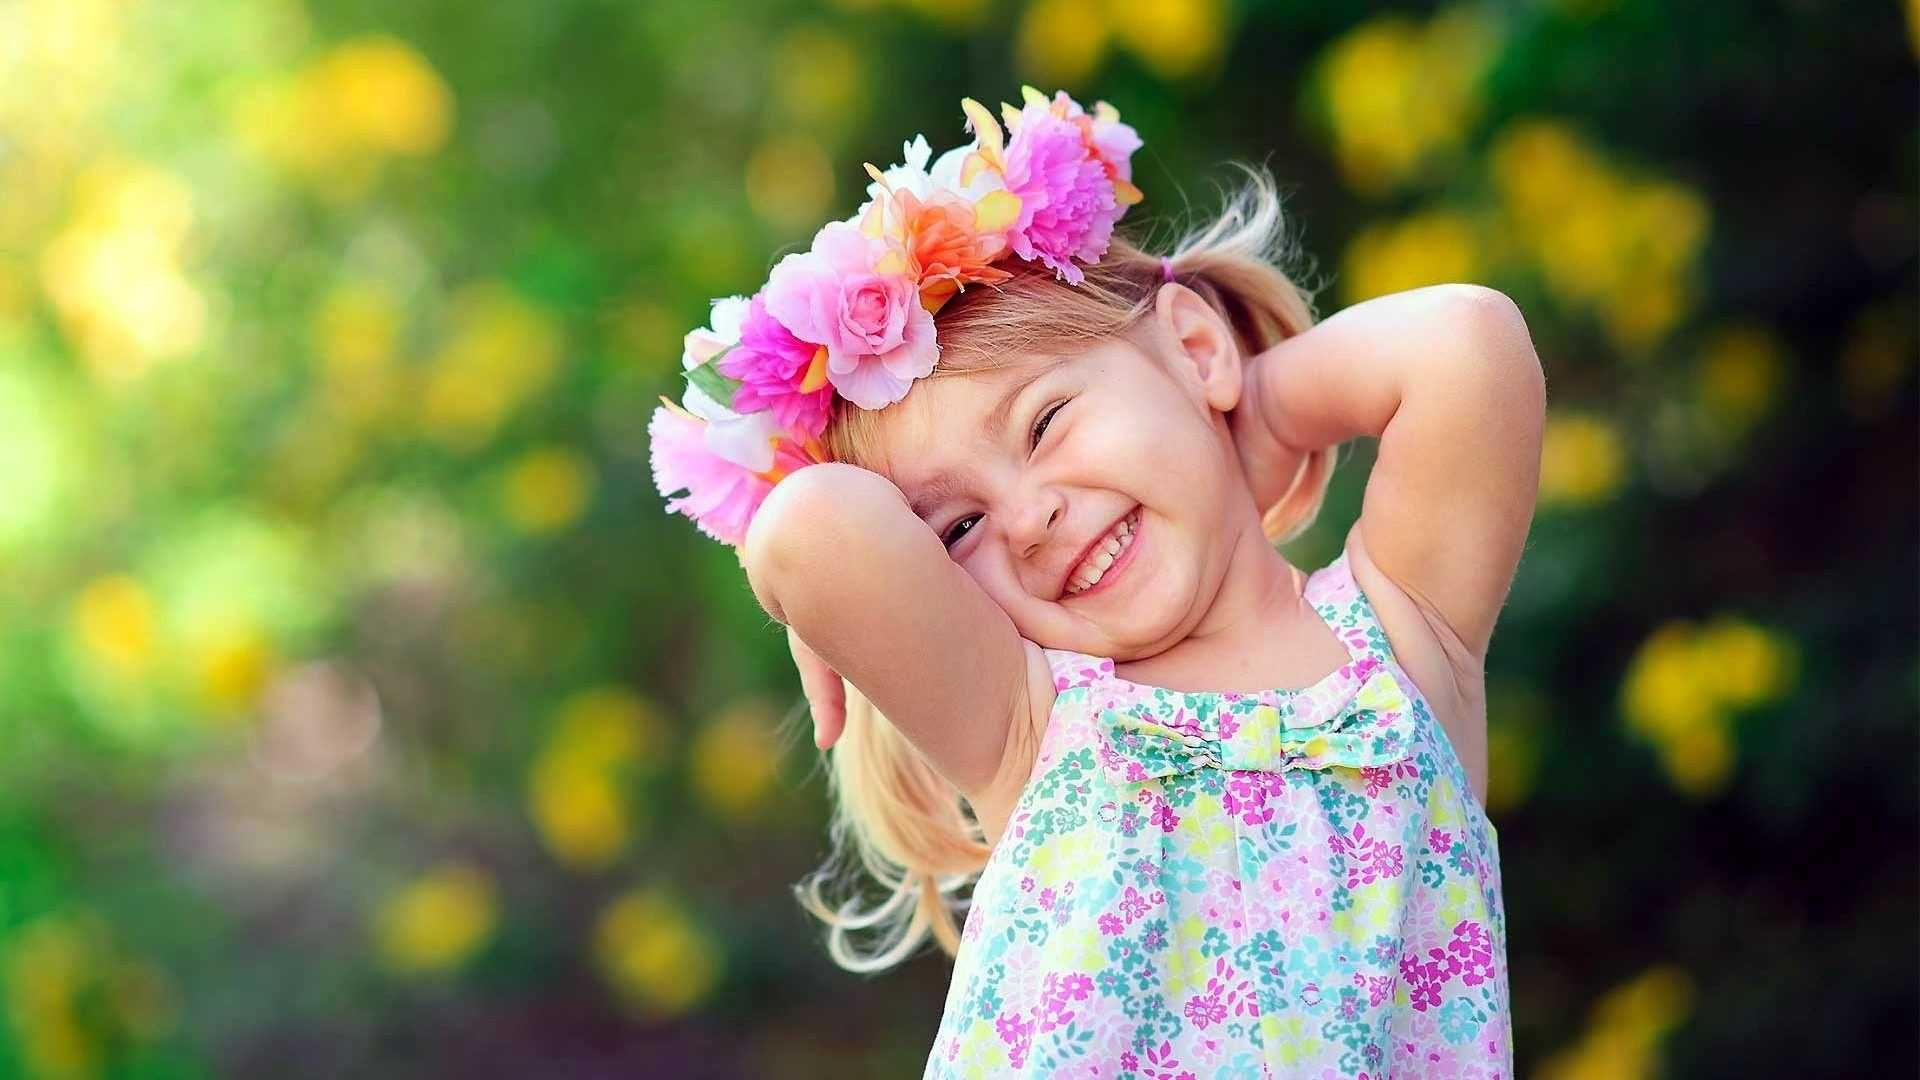 laughing babies wallpapers hd best collection of cute babies | epic